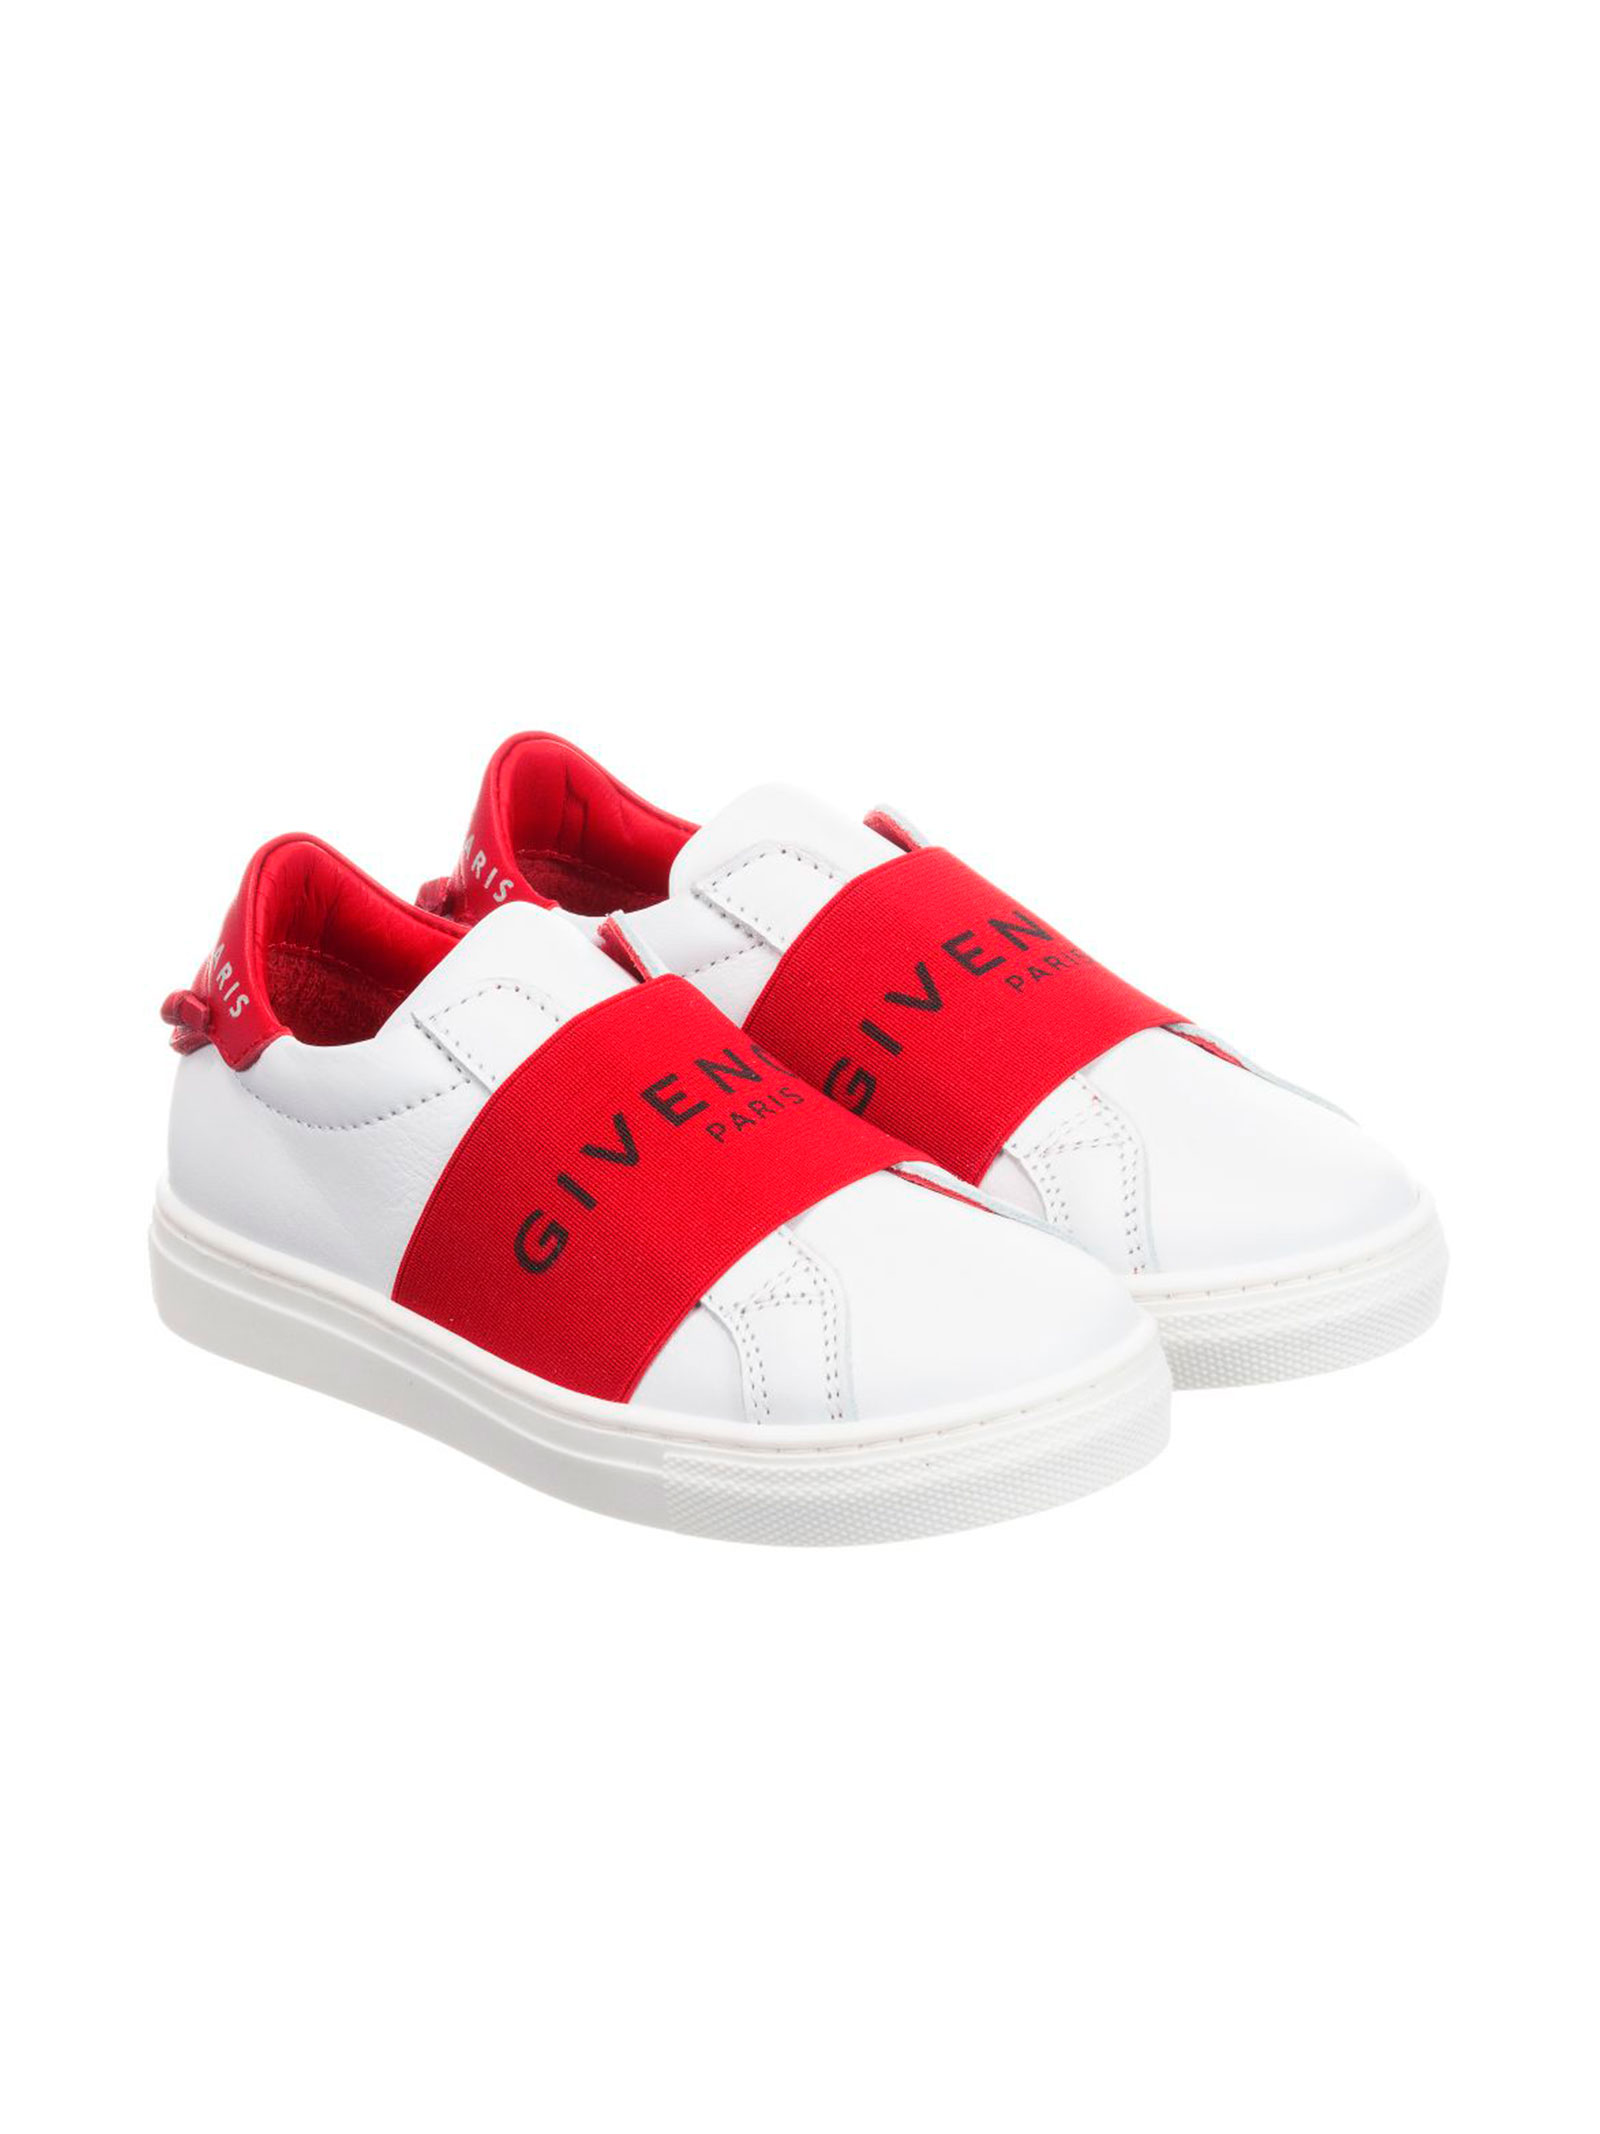 75270e38f73a WHITE AND RED SNEAKERS GIVENCHY KIDS FOR BOY - Givenchy Kids ...